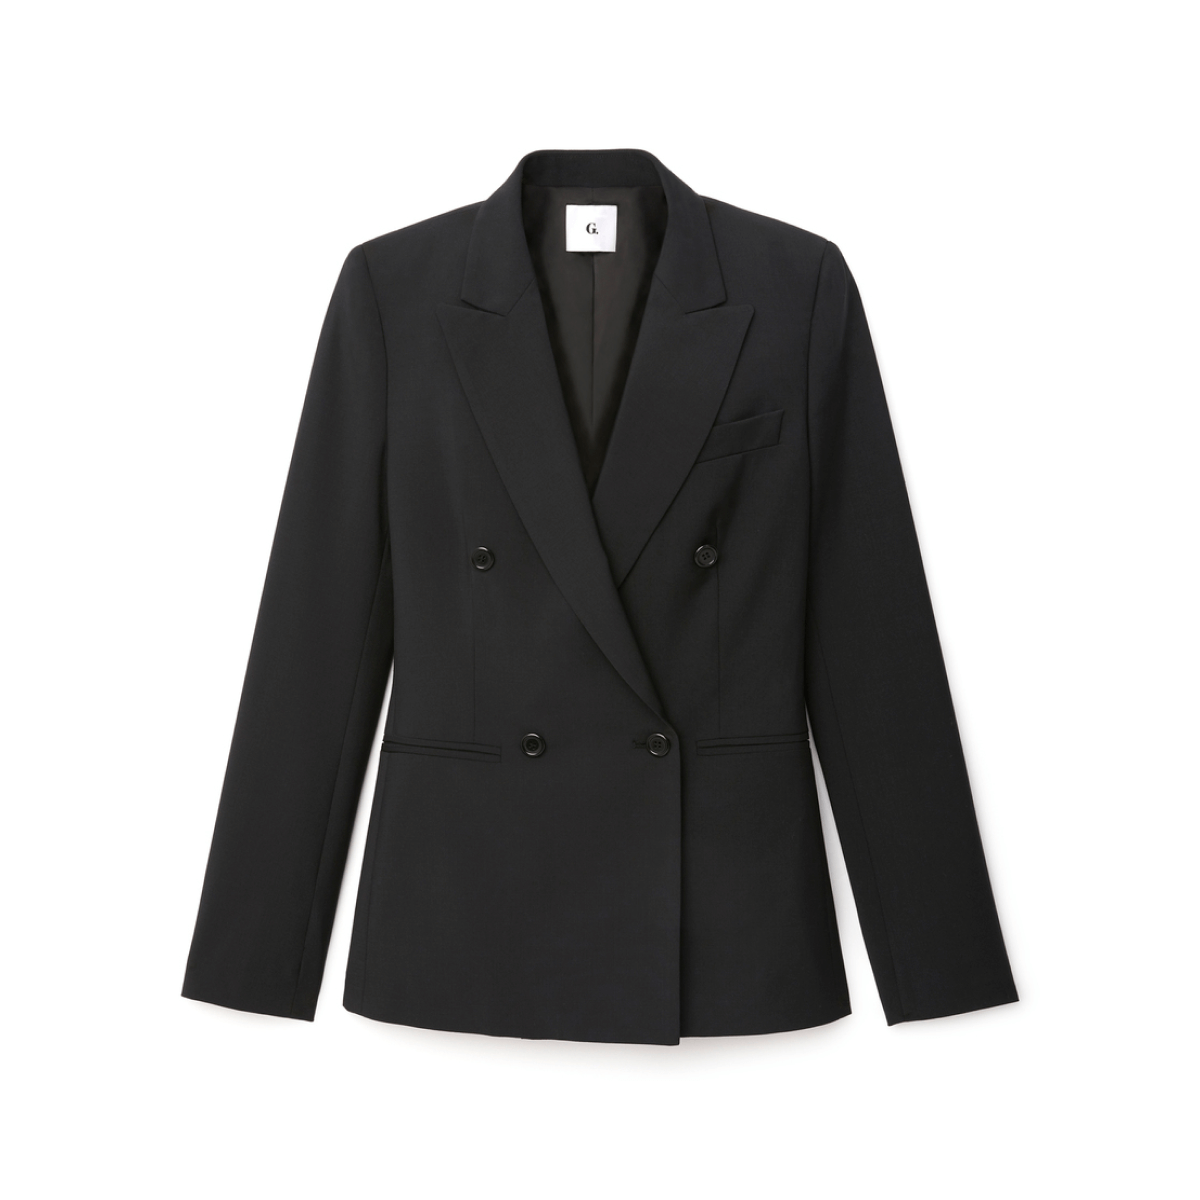 g label jonathan double breasted blazer